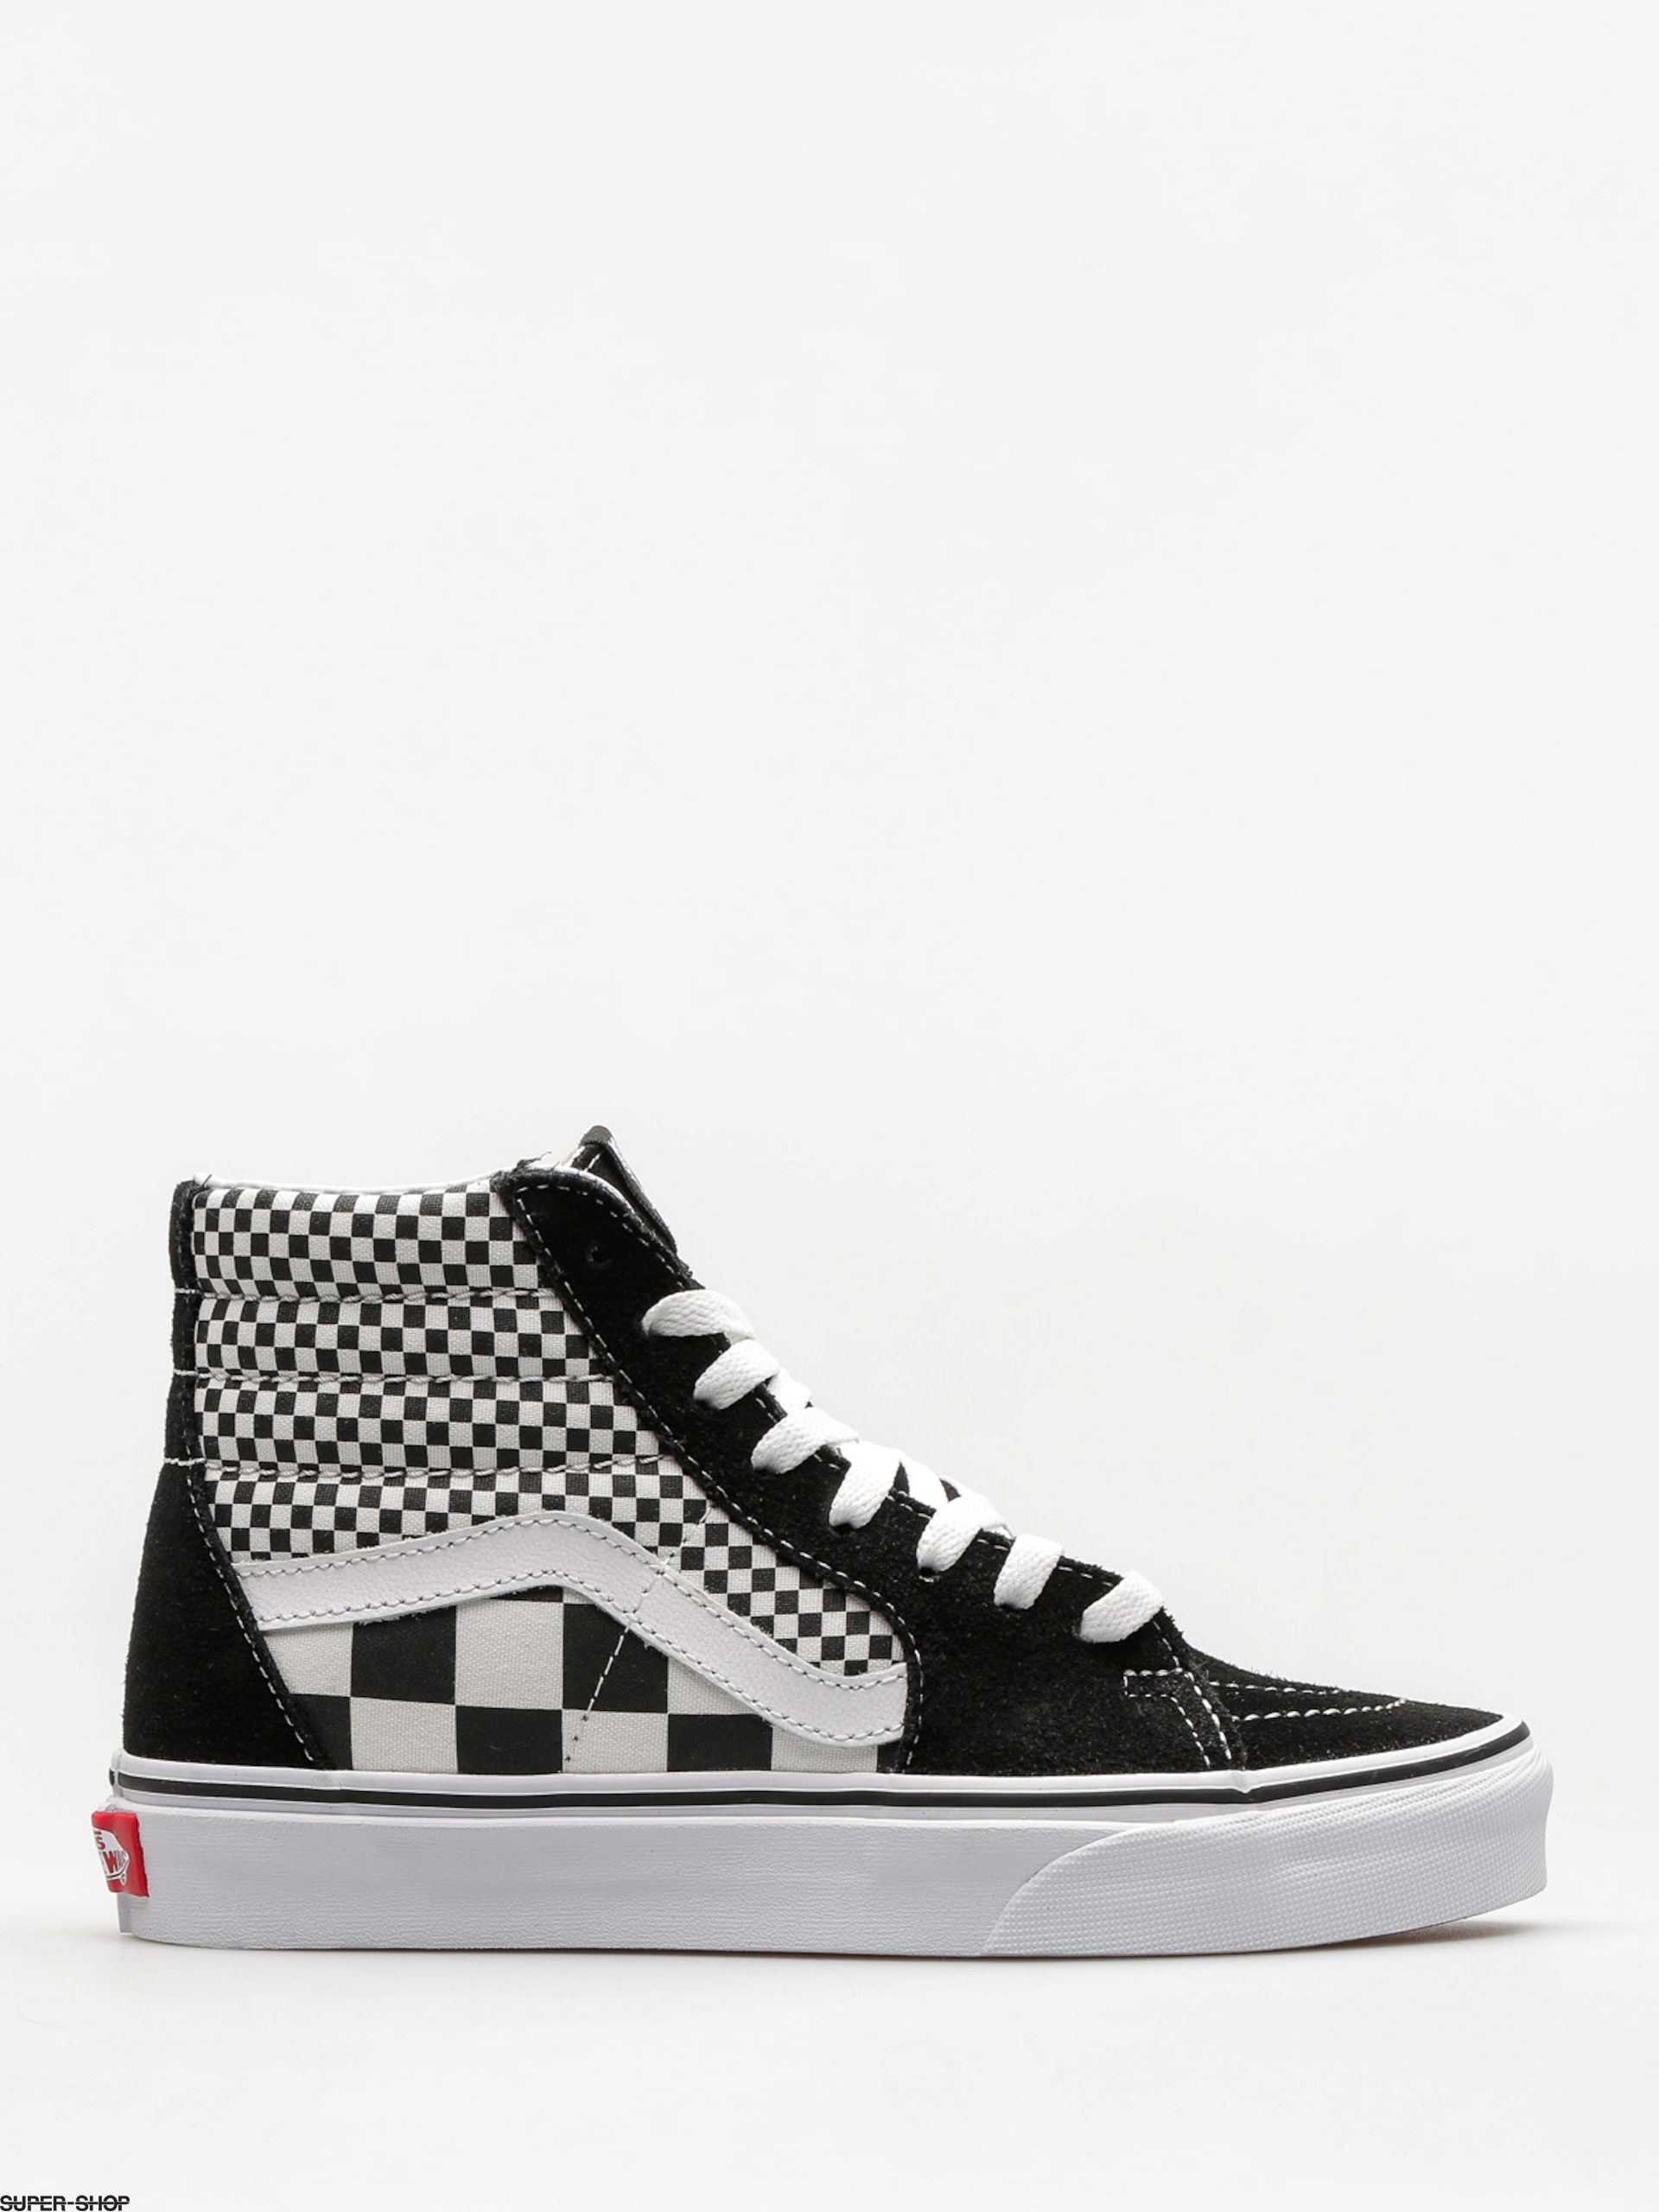 5168440d1c02 Vans Shoes Sk8 Hi (mix checker black true white)